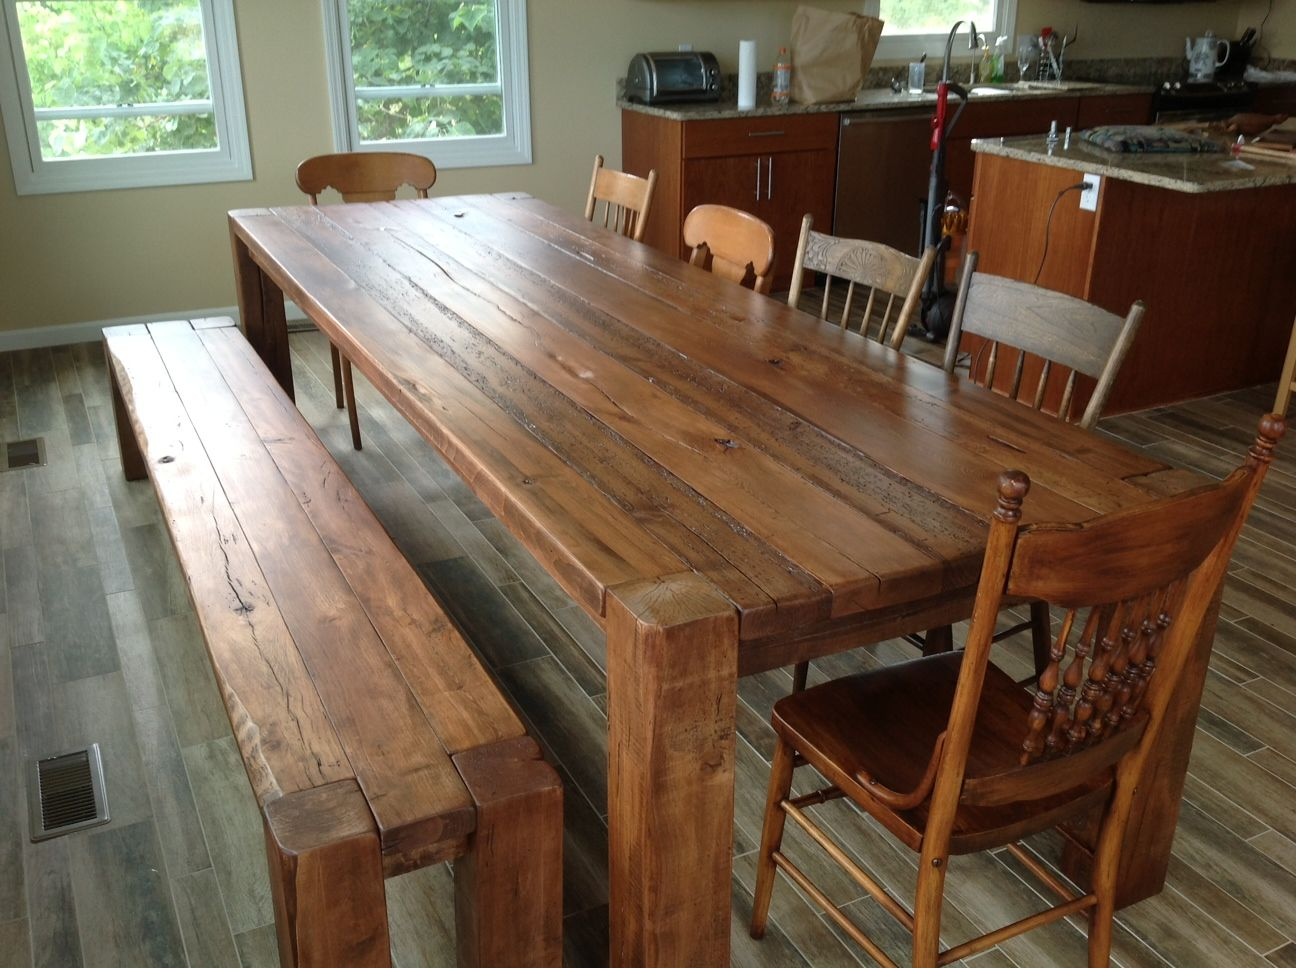 13 best table ideas images on pinterest | kitchen tables, tables